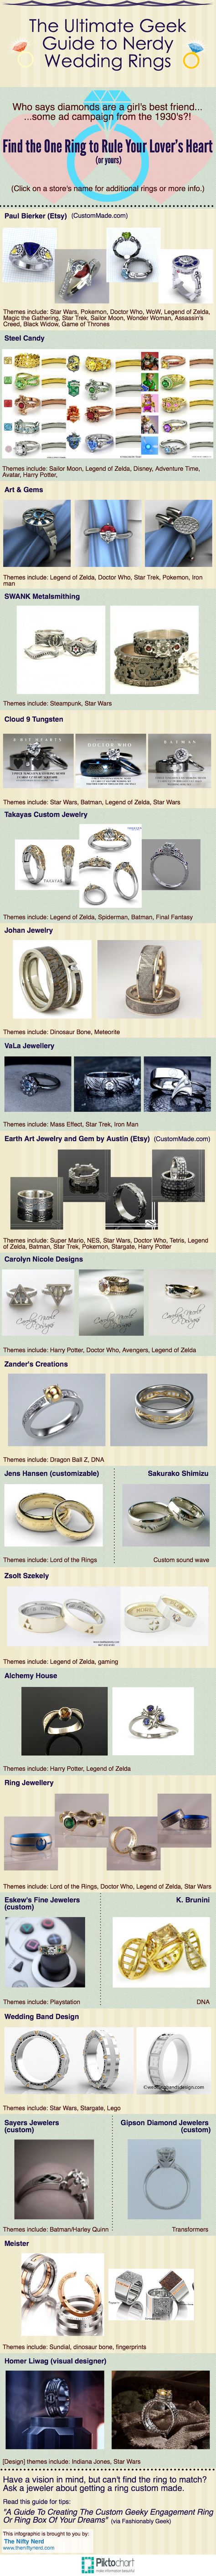 Geek Wedding Ring Guide [interactive infographic] | via The Nifty Nerd |  Nerdy engagement rings you can actually buy; Star Wars, Doctor Who, Lord of the Rings, science, Legend of Zelda, Pokemon, WoW, video gaming, Harry Potter, Dragon Ball, Star Trek, steampunk, Batman, Spiderman, Iron man, dinosaur bone, Mario, Stargate, and more!